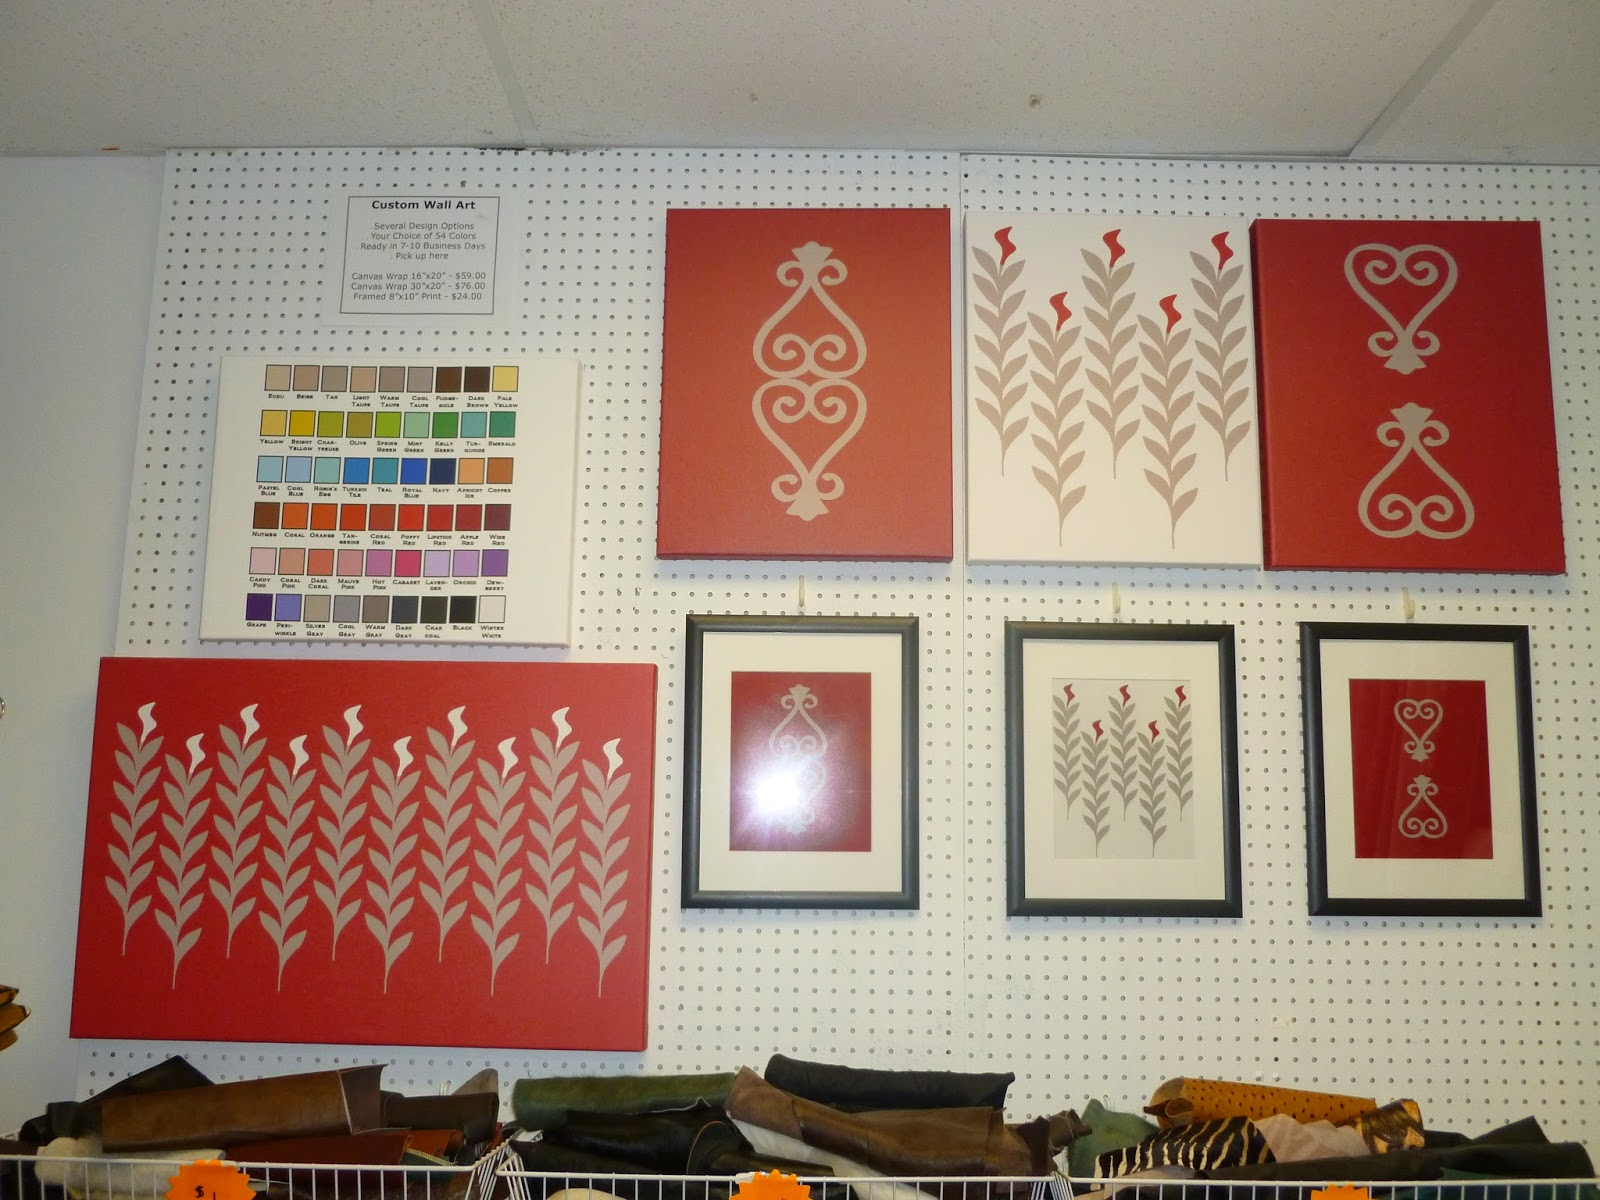 Tie Top Curtains South Africa: Anitavee's Home Decor & More: African Home Decor And